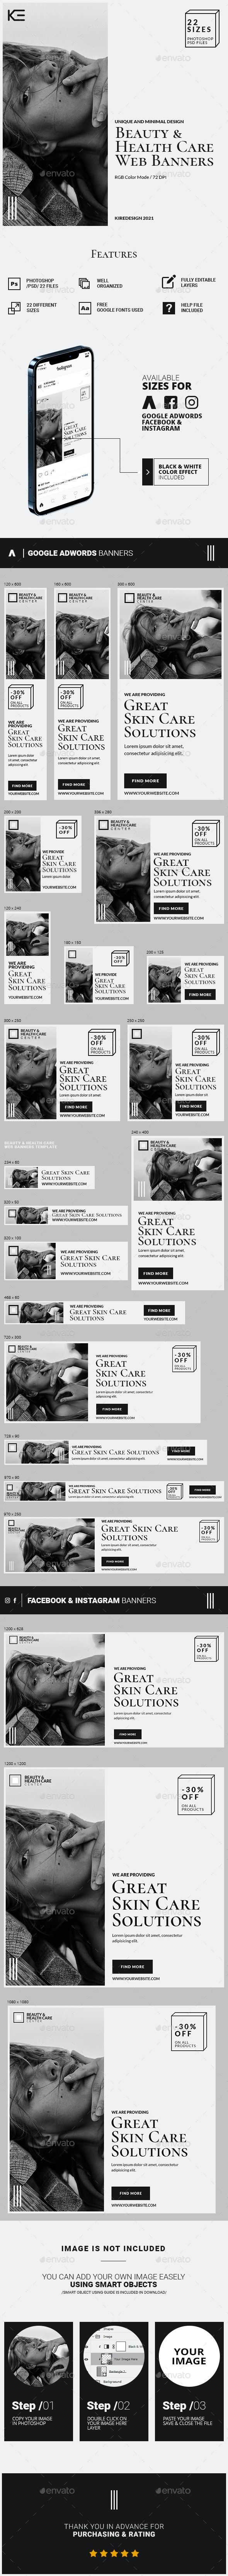 Beauty And Health Care Web Banners - Banners & Ads Web Elements